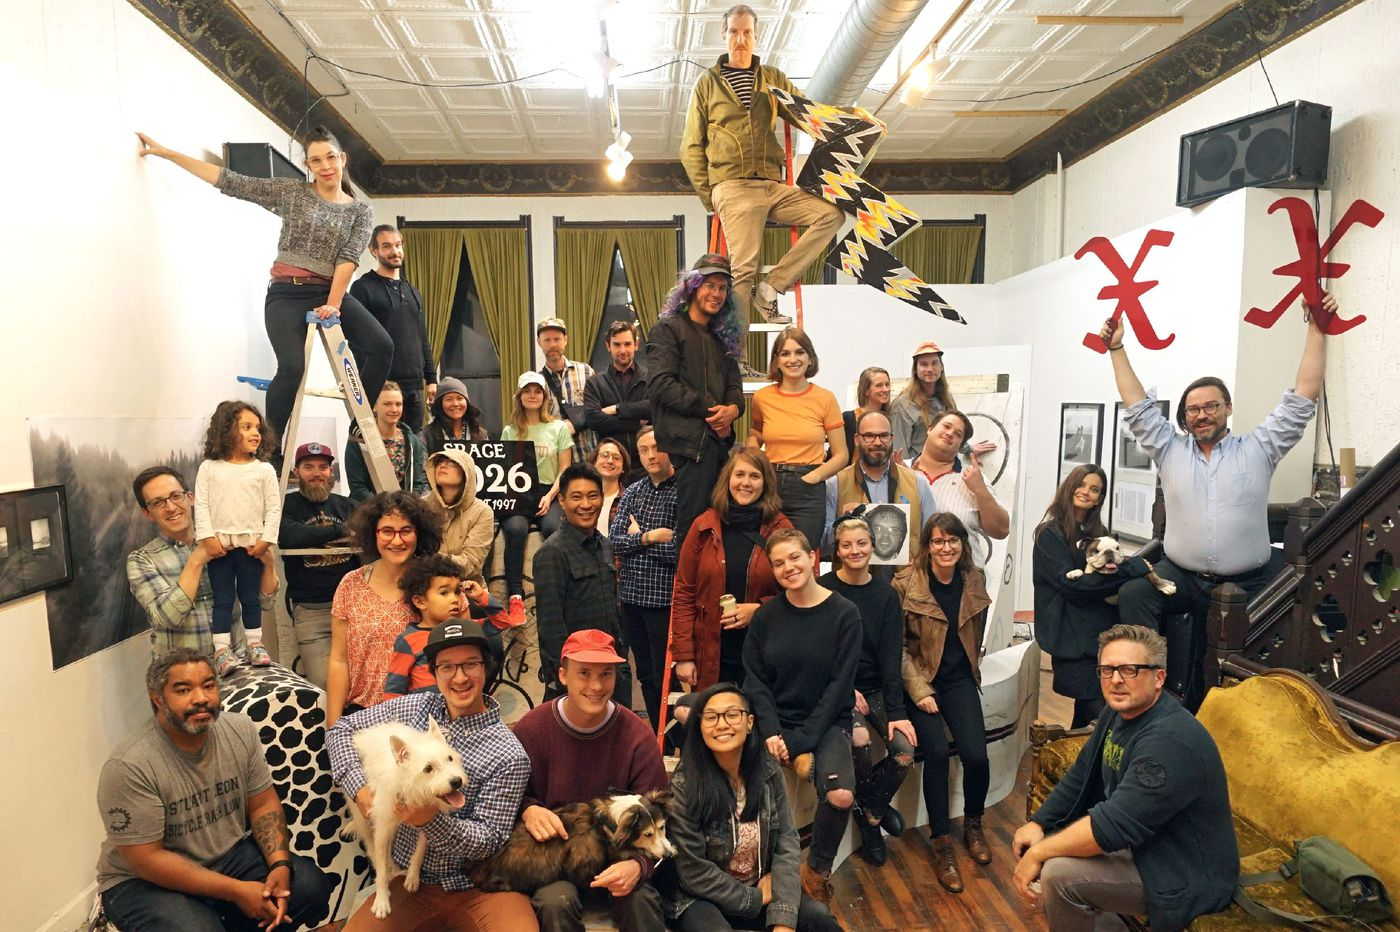 Art collective Space 1026 forced out from Chinatown building